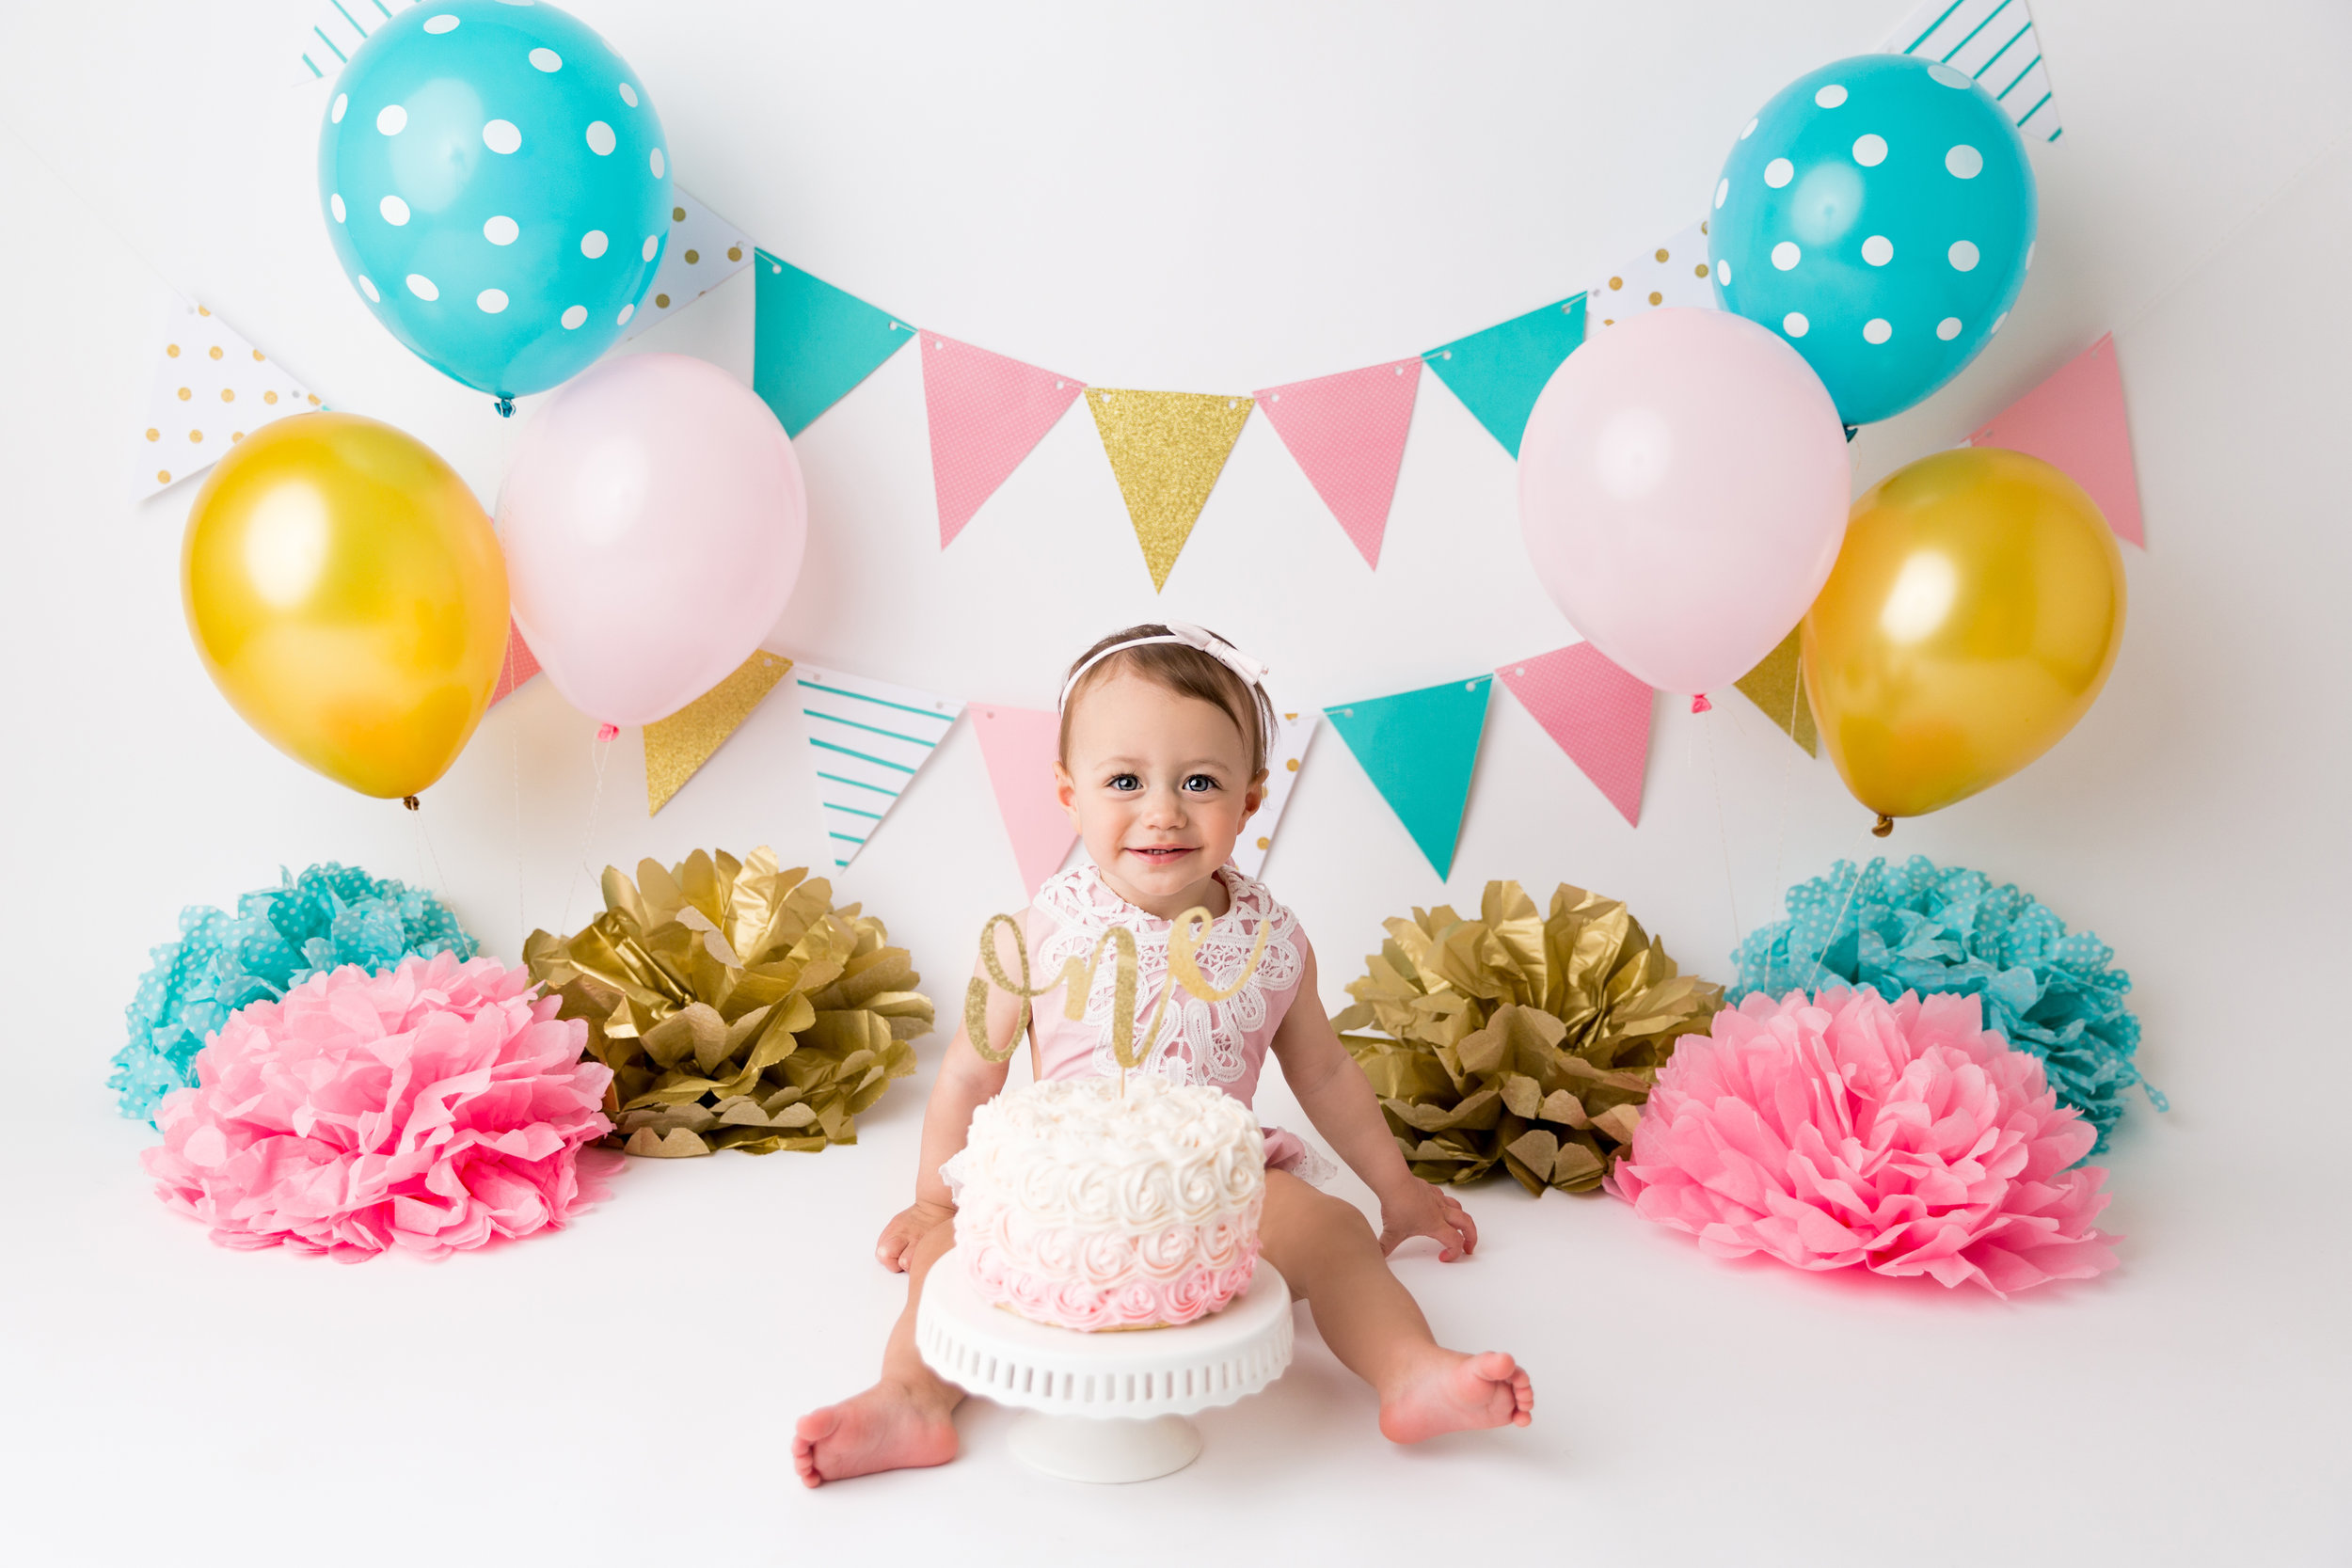 Cakesmash_SweetBlissphotography_marylandphotographer-18.5.jpg